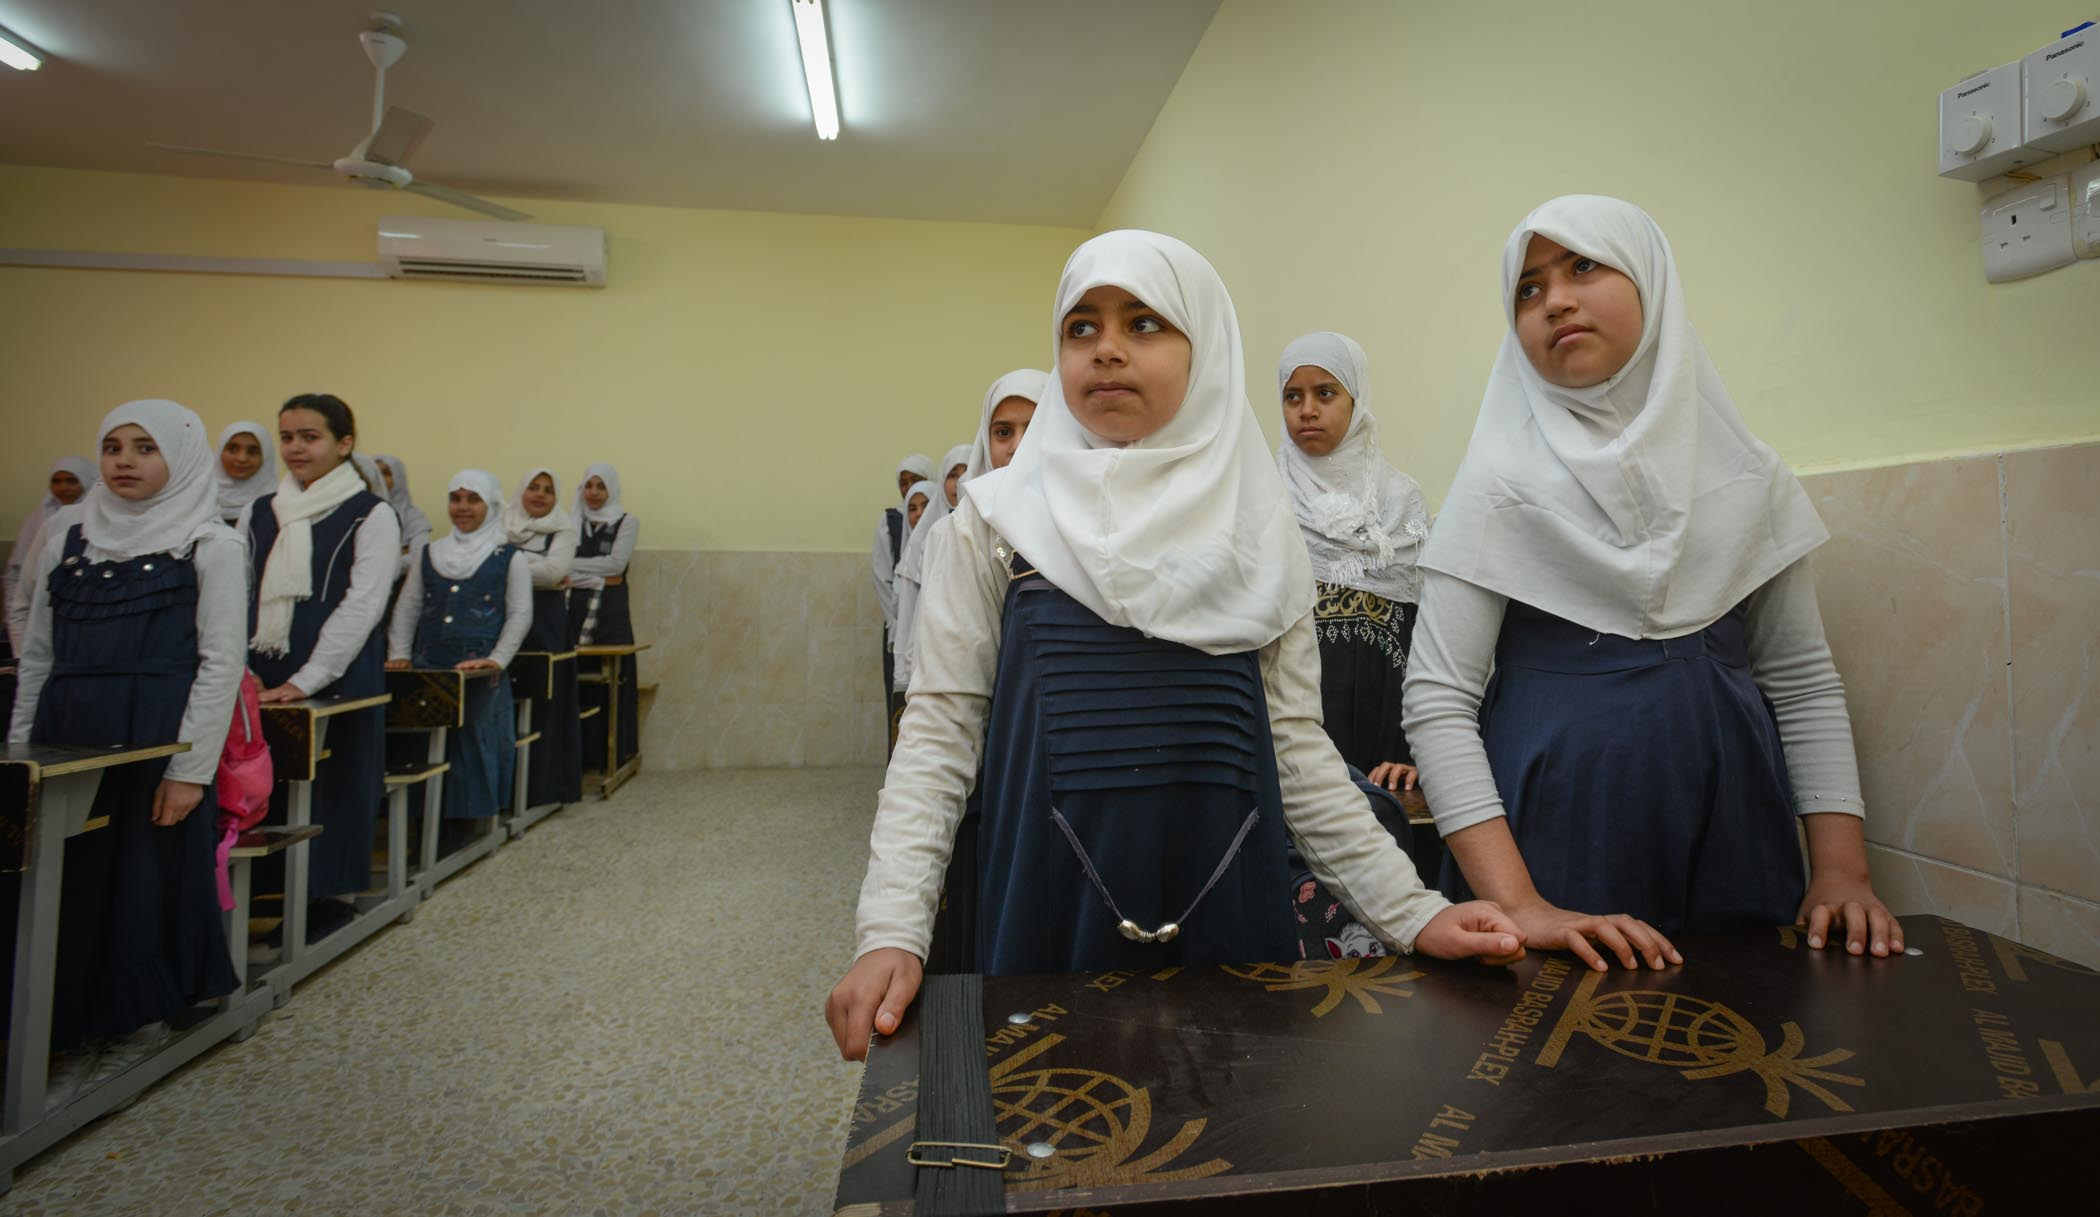 Schoolgirls Stand To Attention For Their Teacher